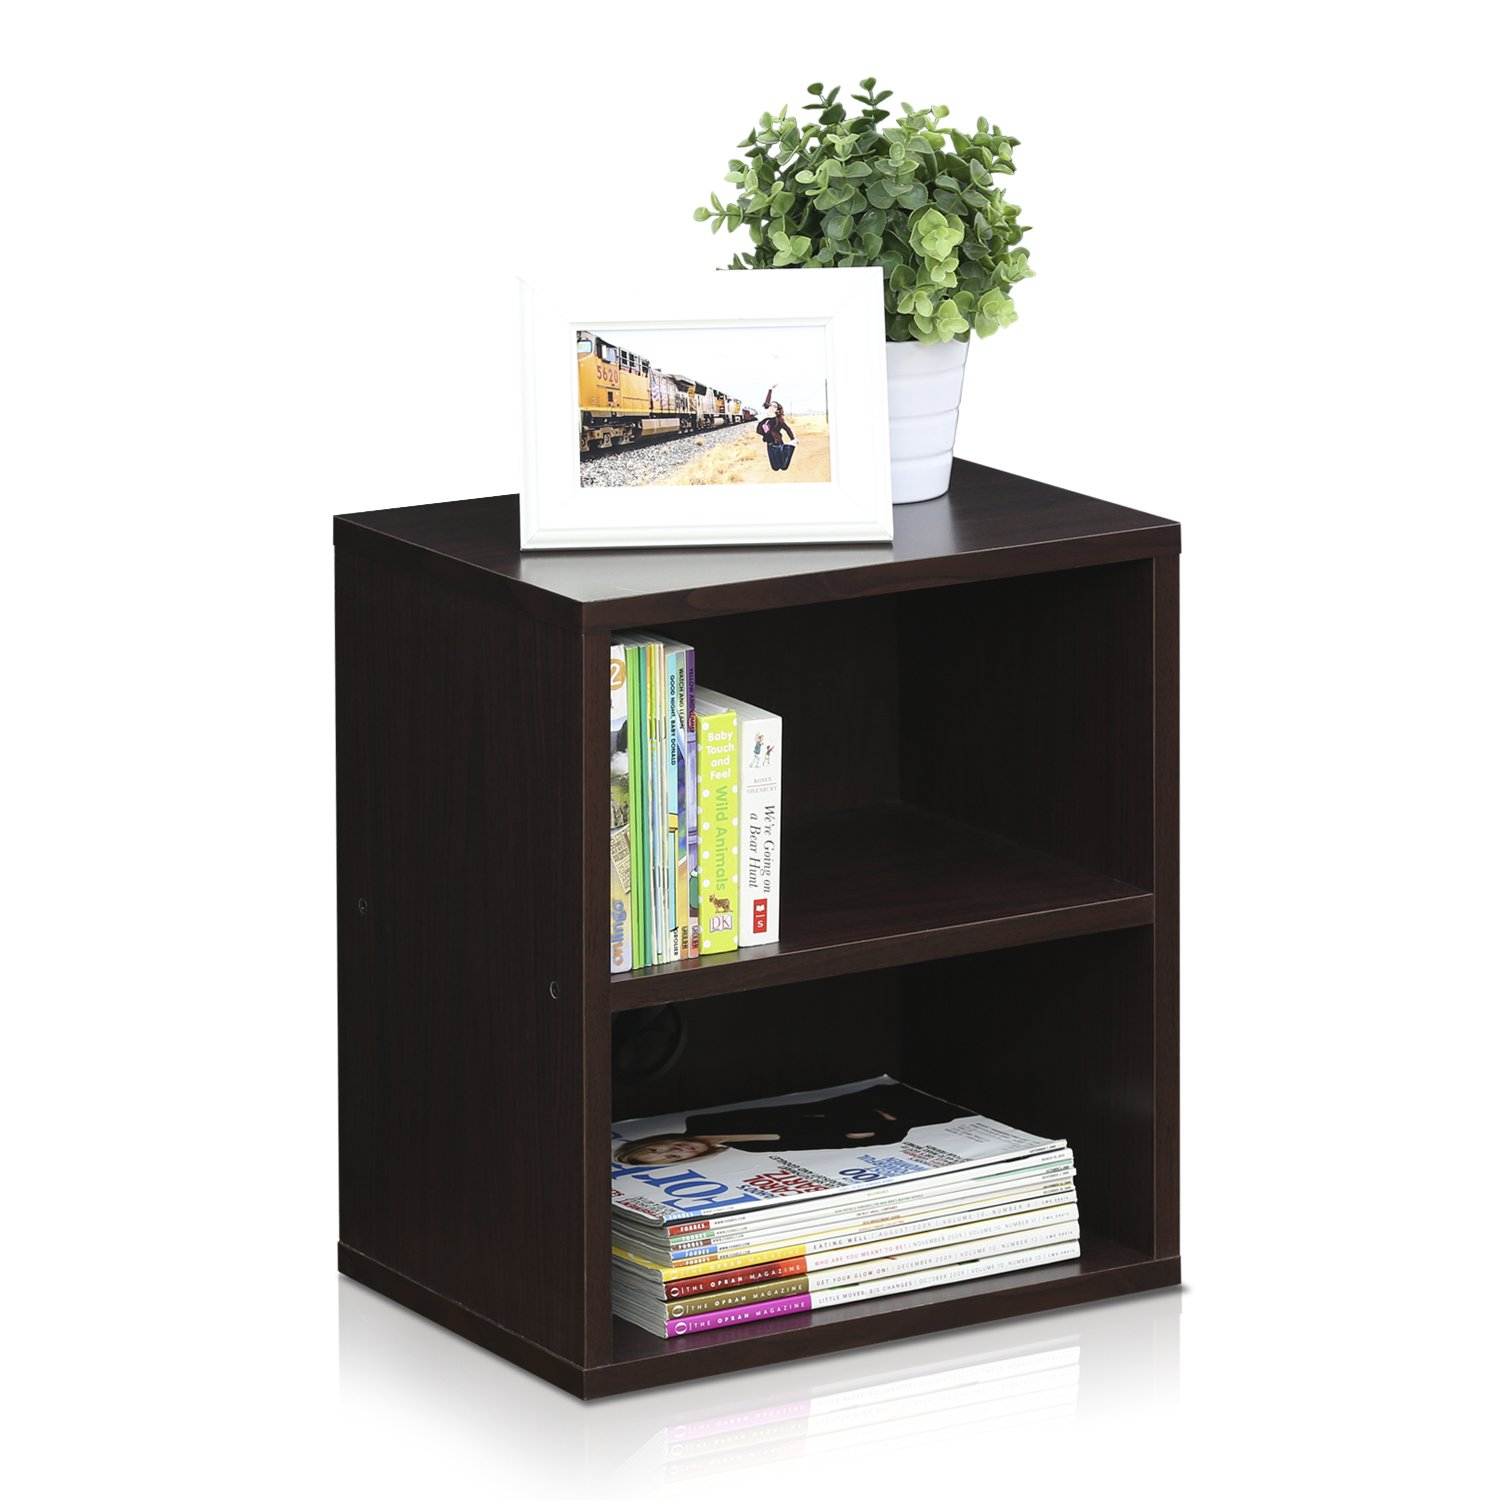 Furinno Indo FLS-4030EX 3-Tier Petite Audio Video Display Shelf, Espresso